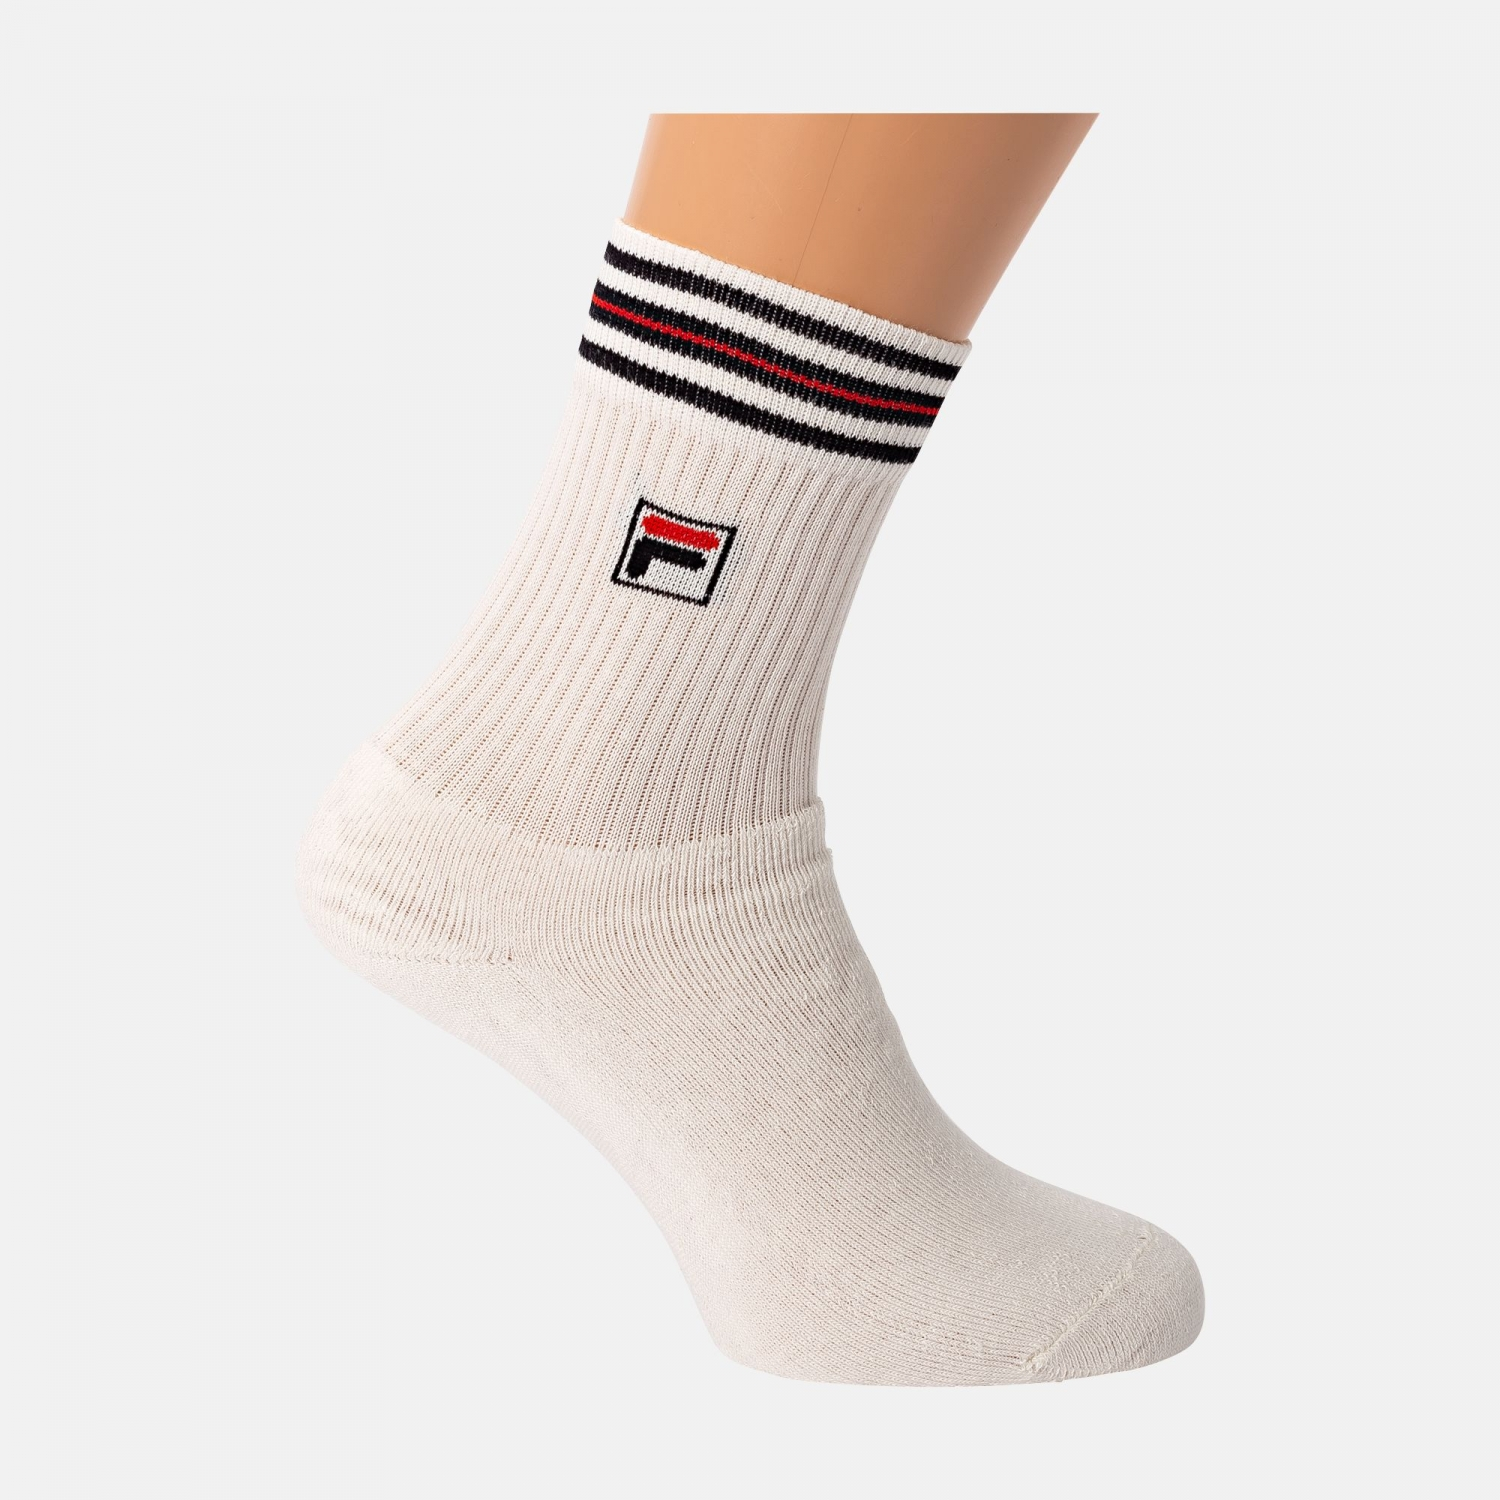 Fila Unisex Tennis Socks white Bild 1